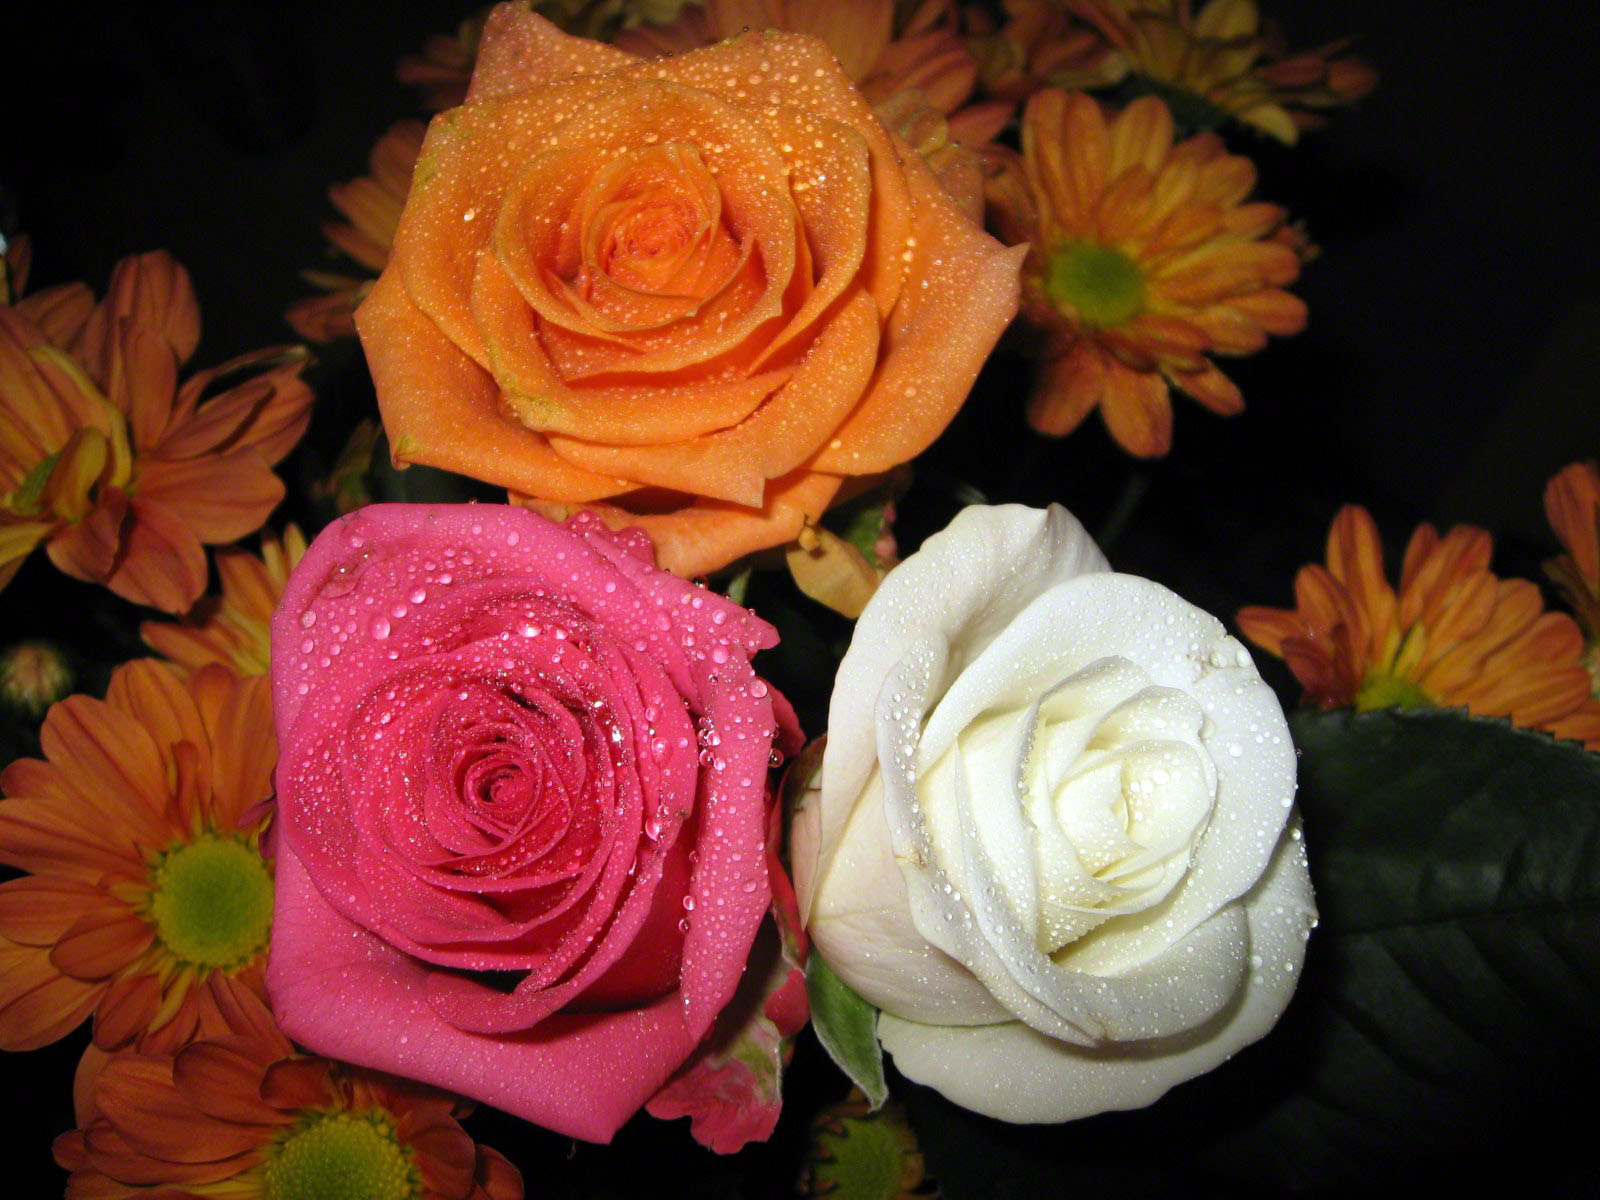 http://www.fabiovisentin.com/photography/photo/12/roses-wallpaper-roses-bouquets4483.JPG